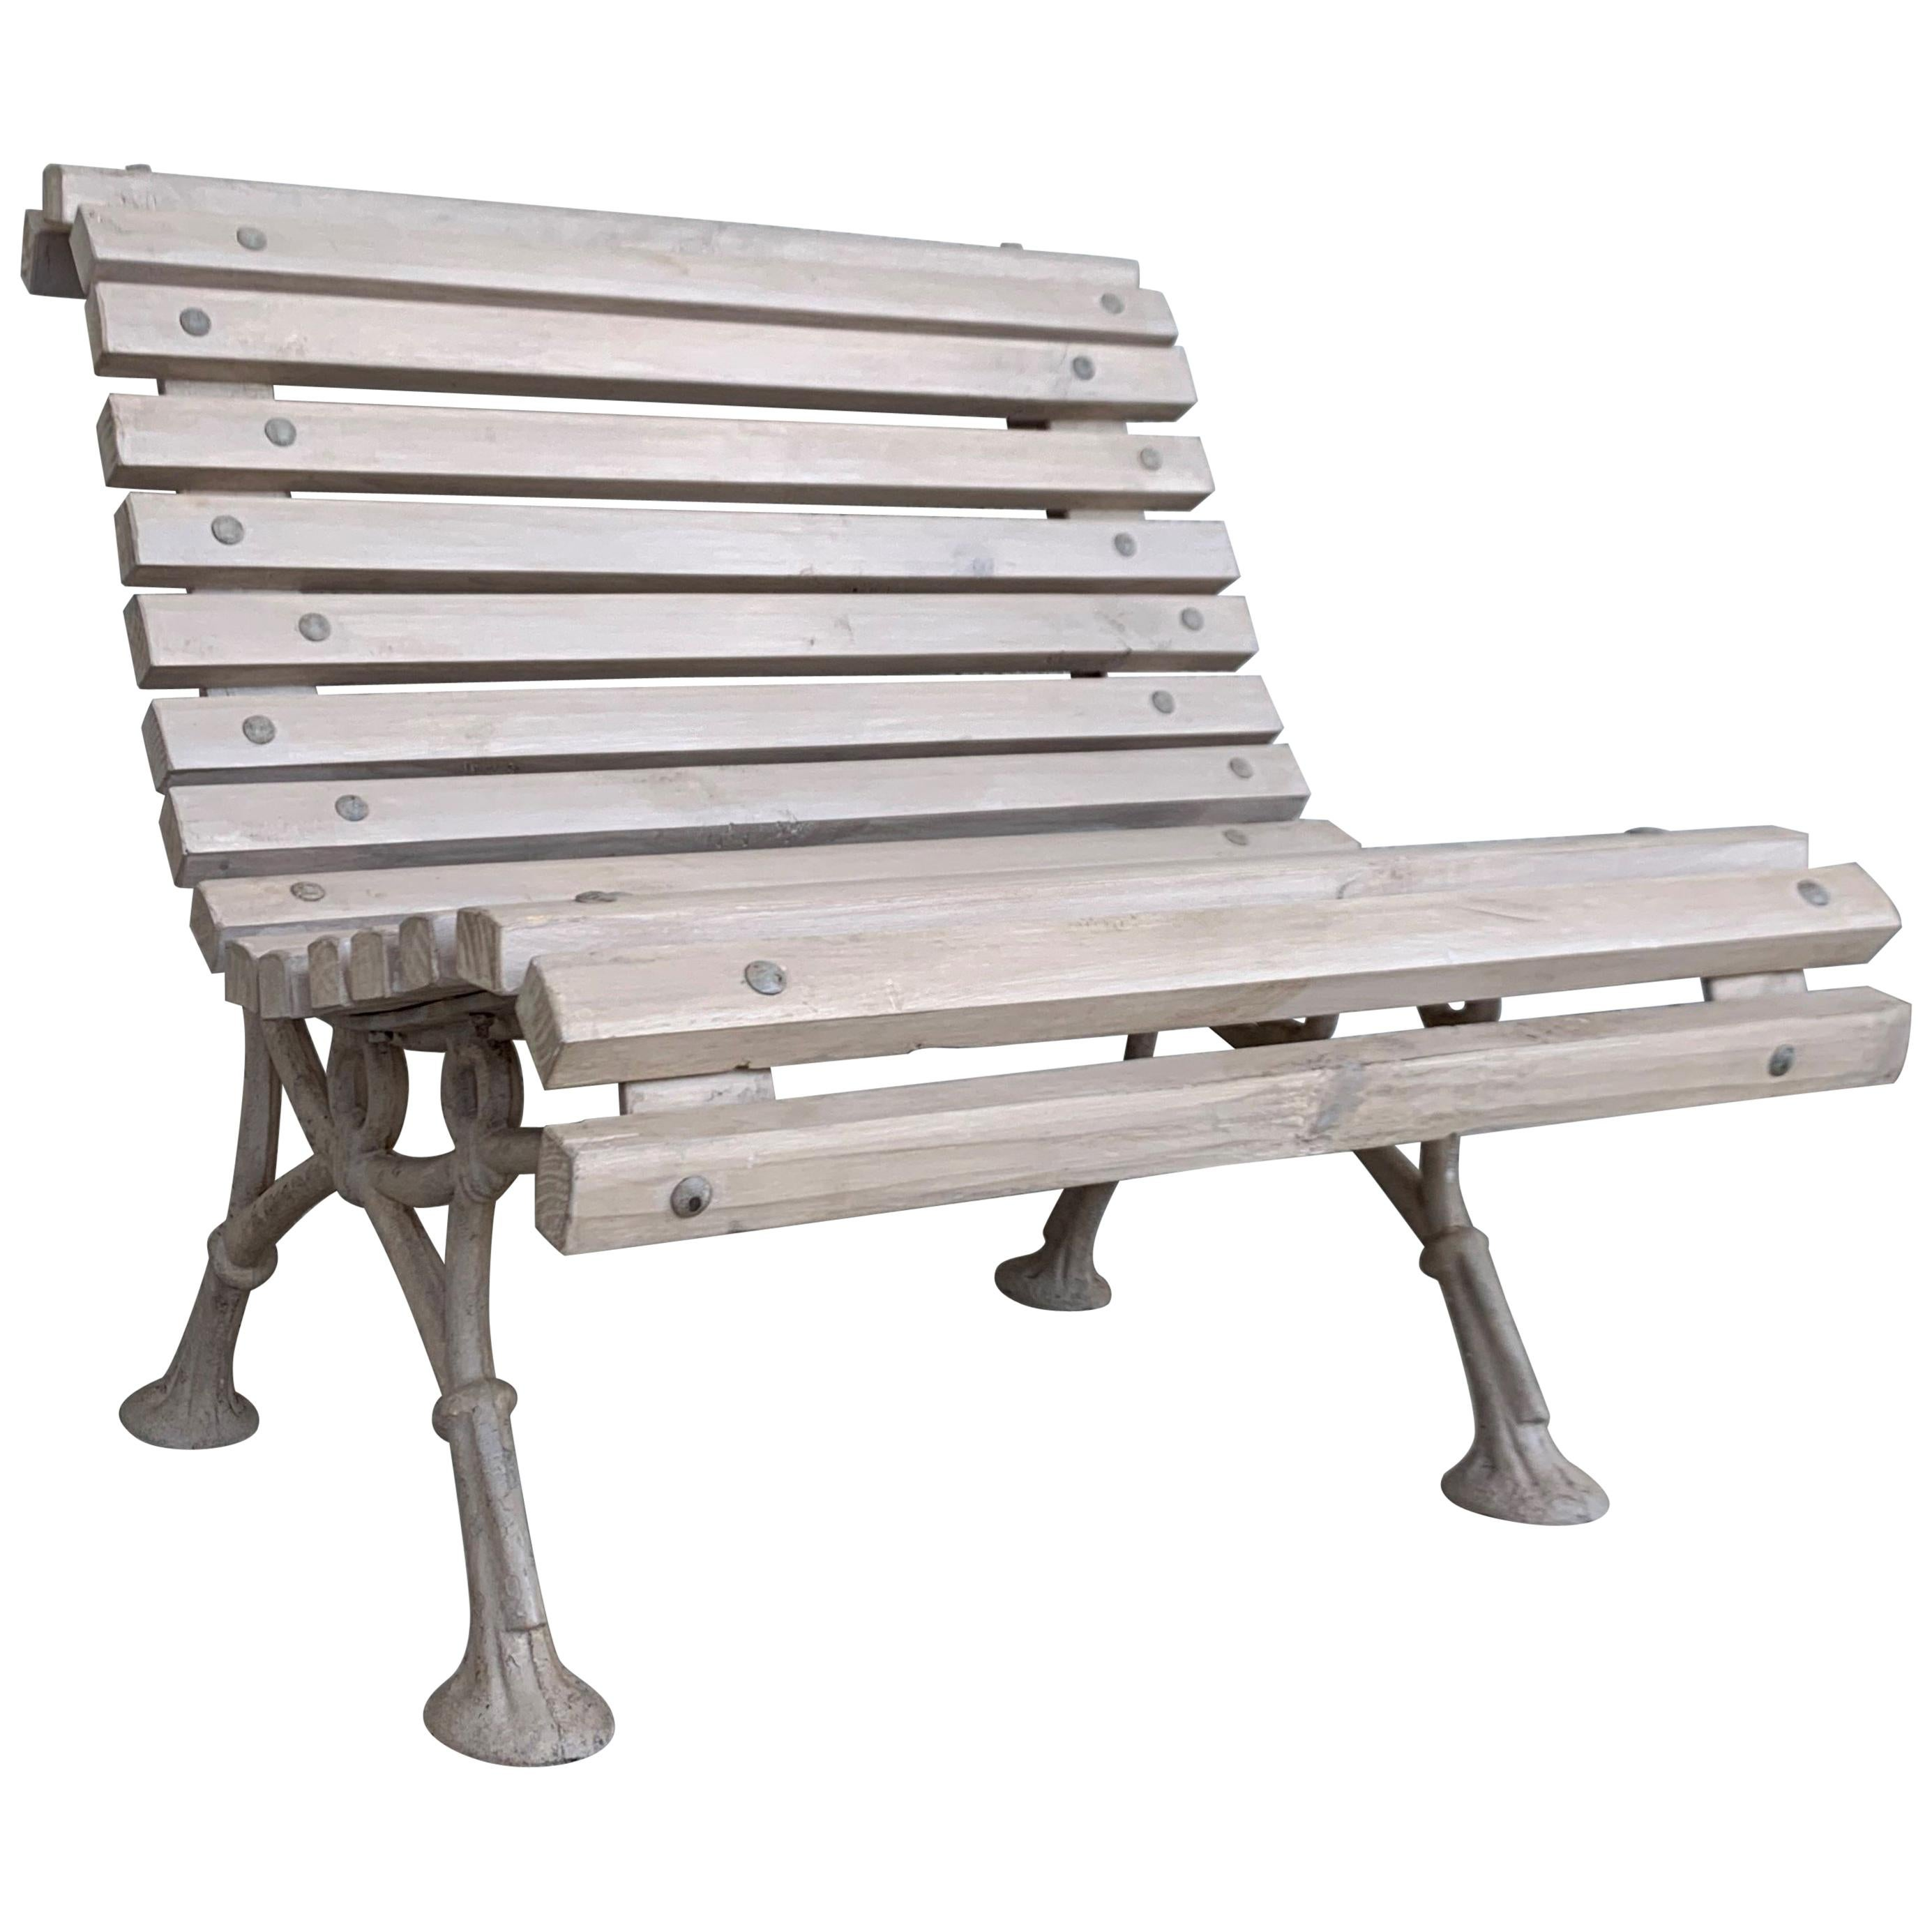 Phenomenal New Green Cast Aluminum Three Seat Garden Or Park Bench Machost Co Dining Chair Design Ideas Machostcouk